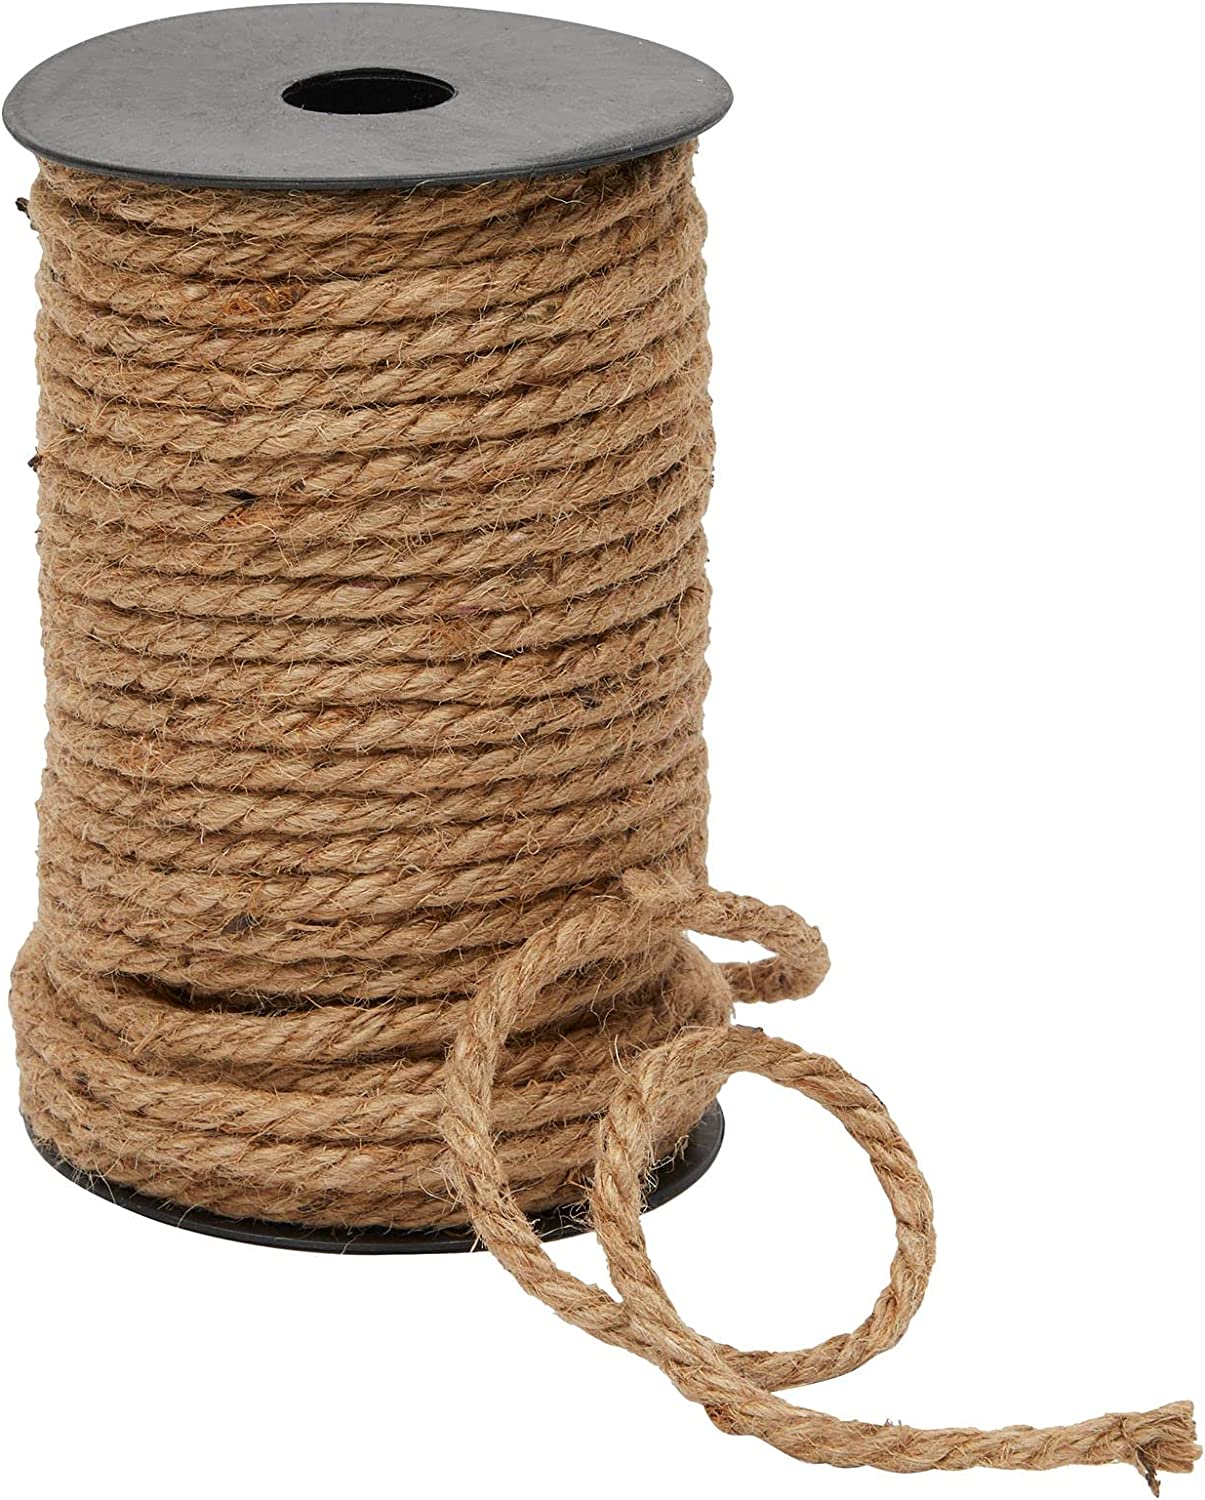 Nautical Rope for price Crafts 100 Feet Jute Inexpensive Thick Hemp Twine Br 5mm